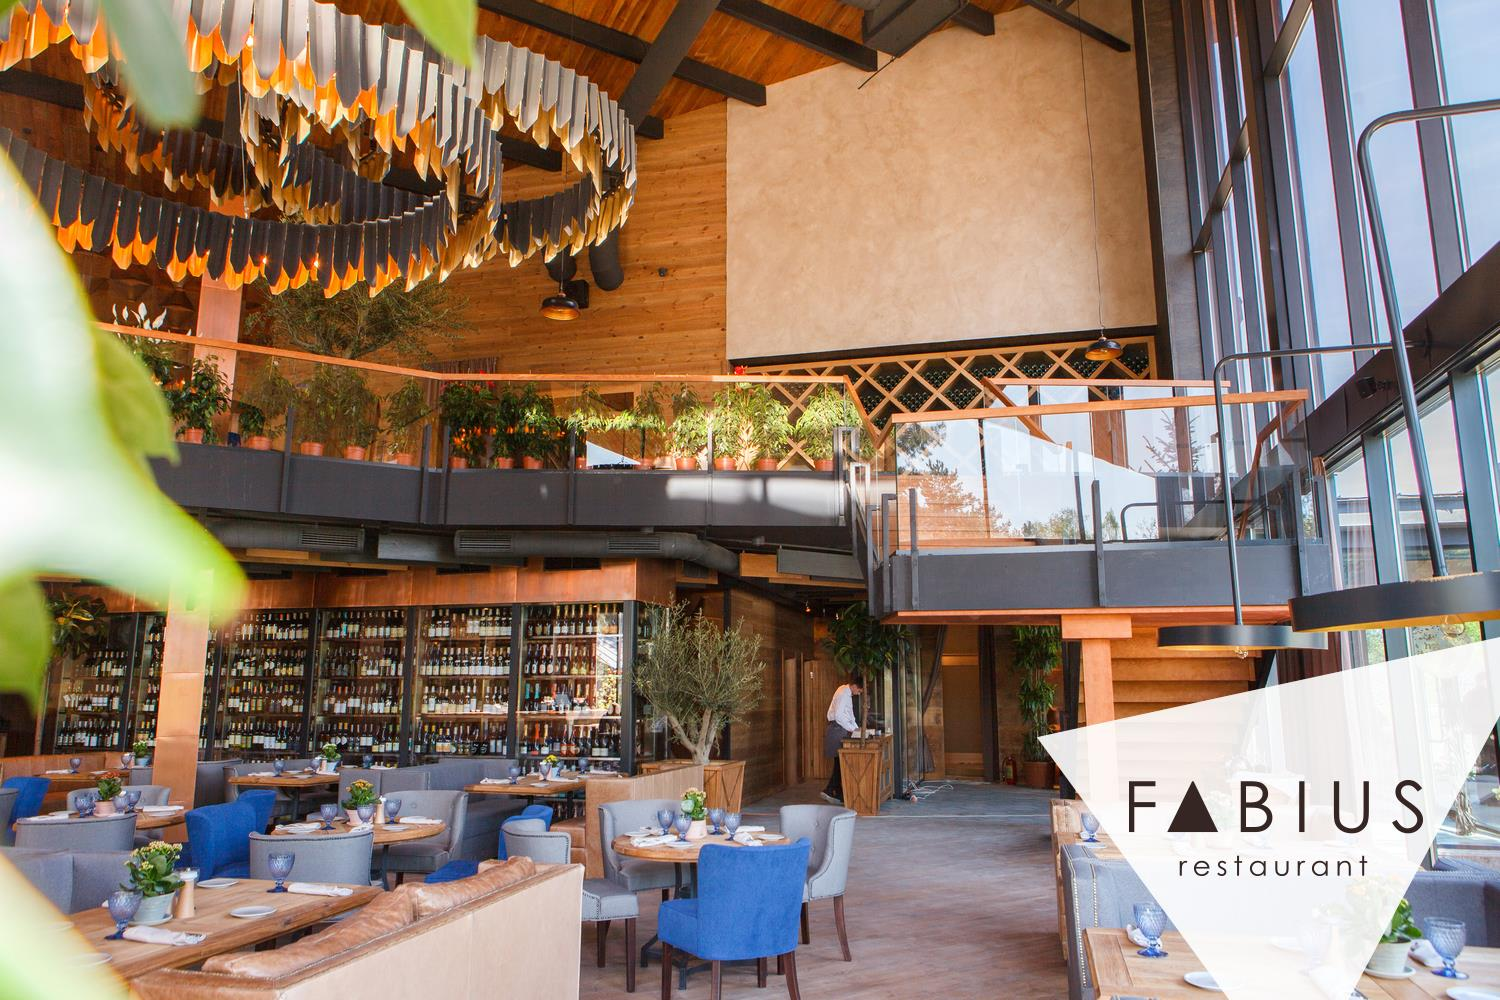 Restaurant Fabius: Cheese Farm, Eco Green-House and Artisan Bakery